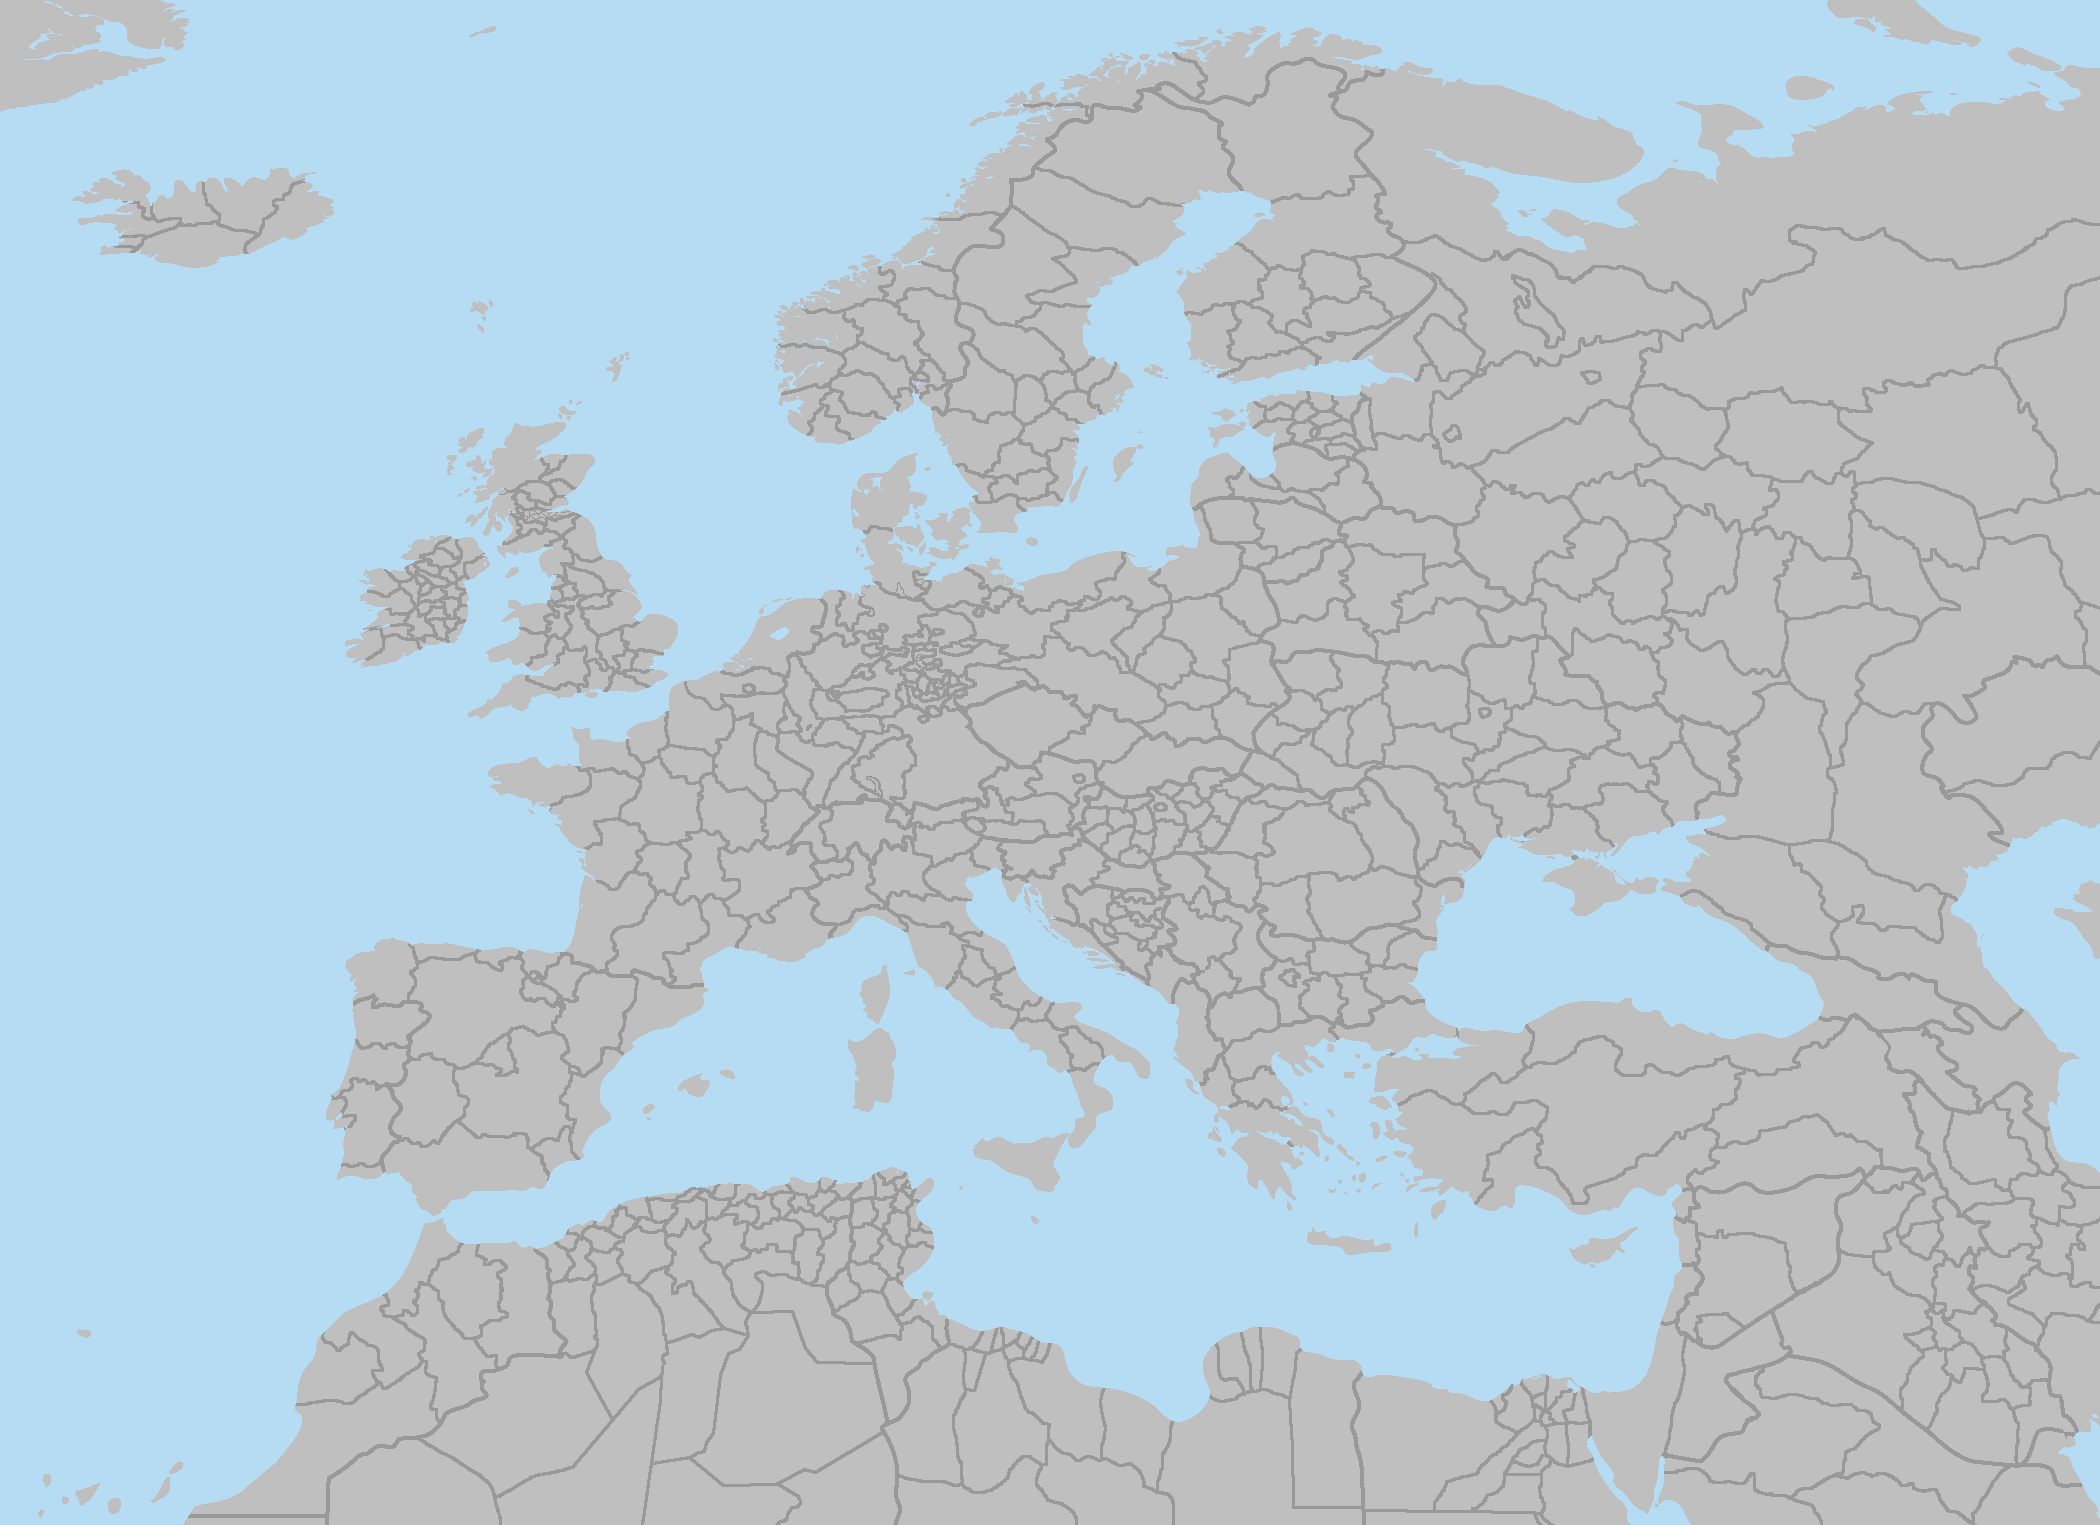 map of europe with subdivisions Europe 2152   Subdivisions by RJDETONADOR97 on DeviantArt